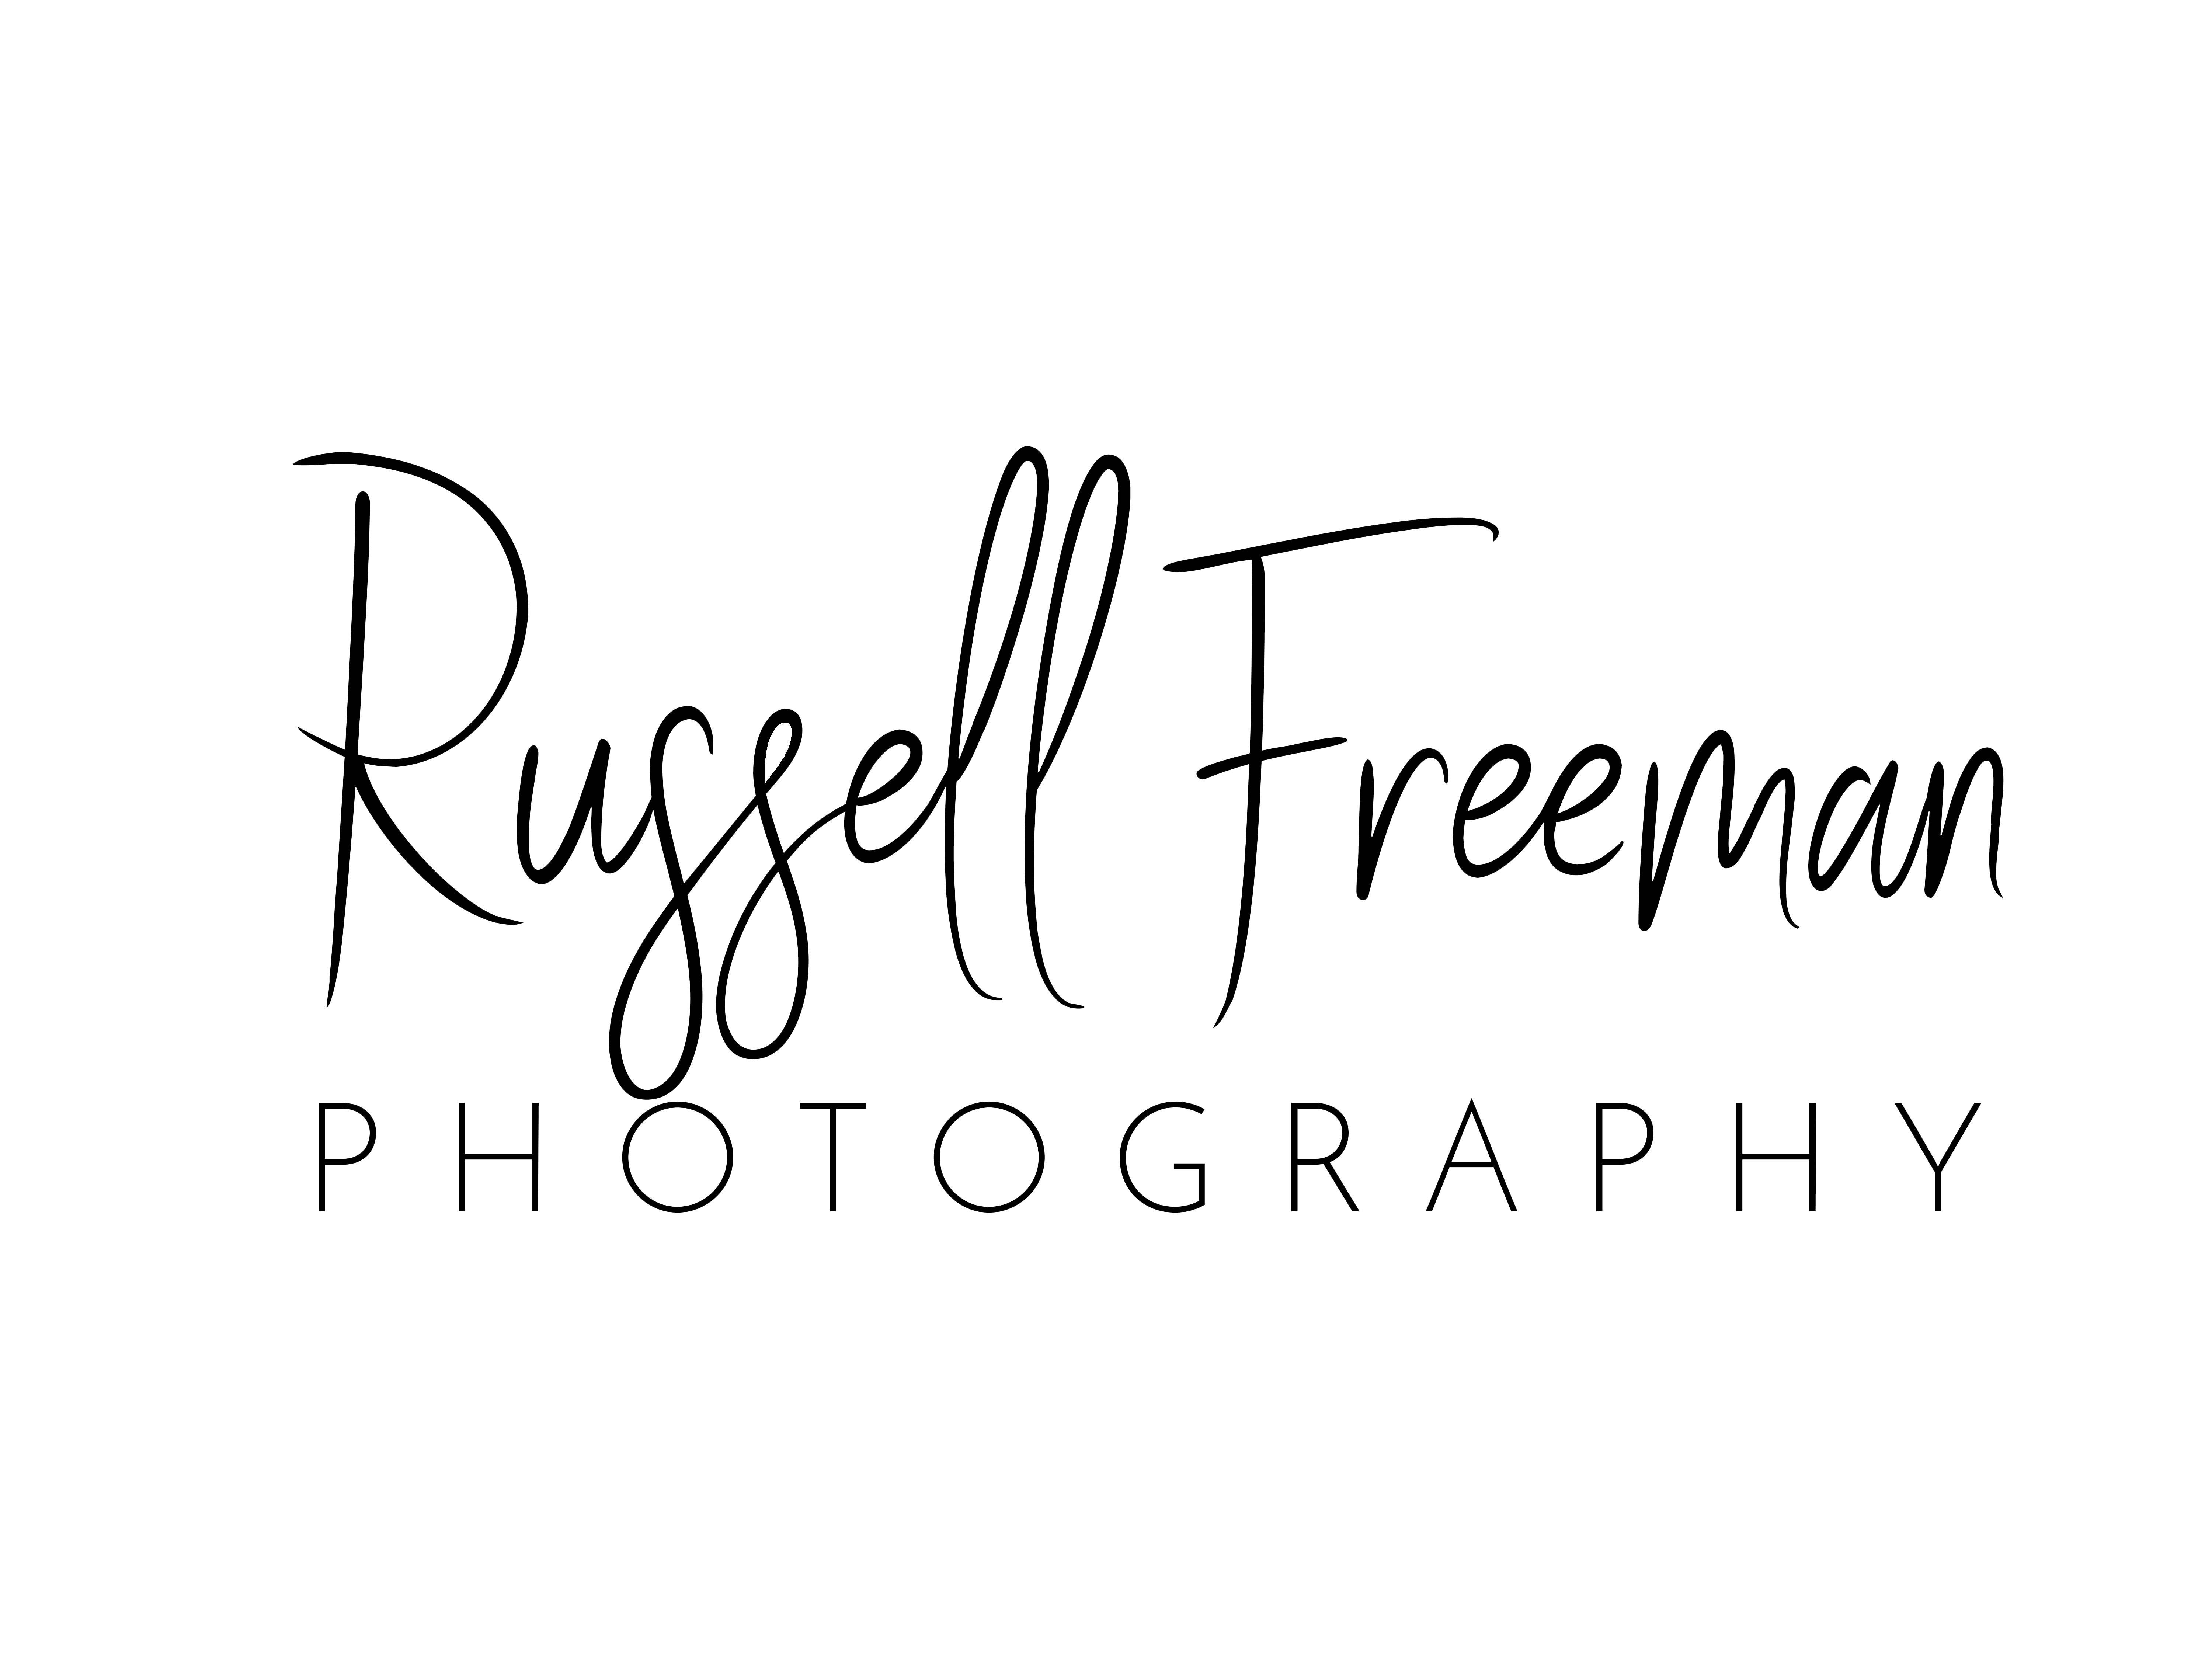 Russell Freeman Photography